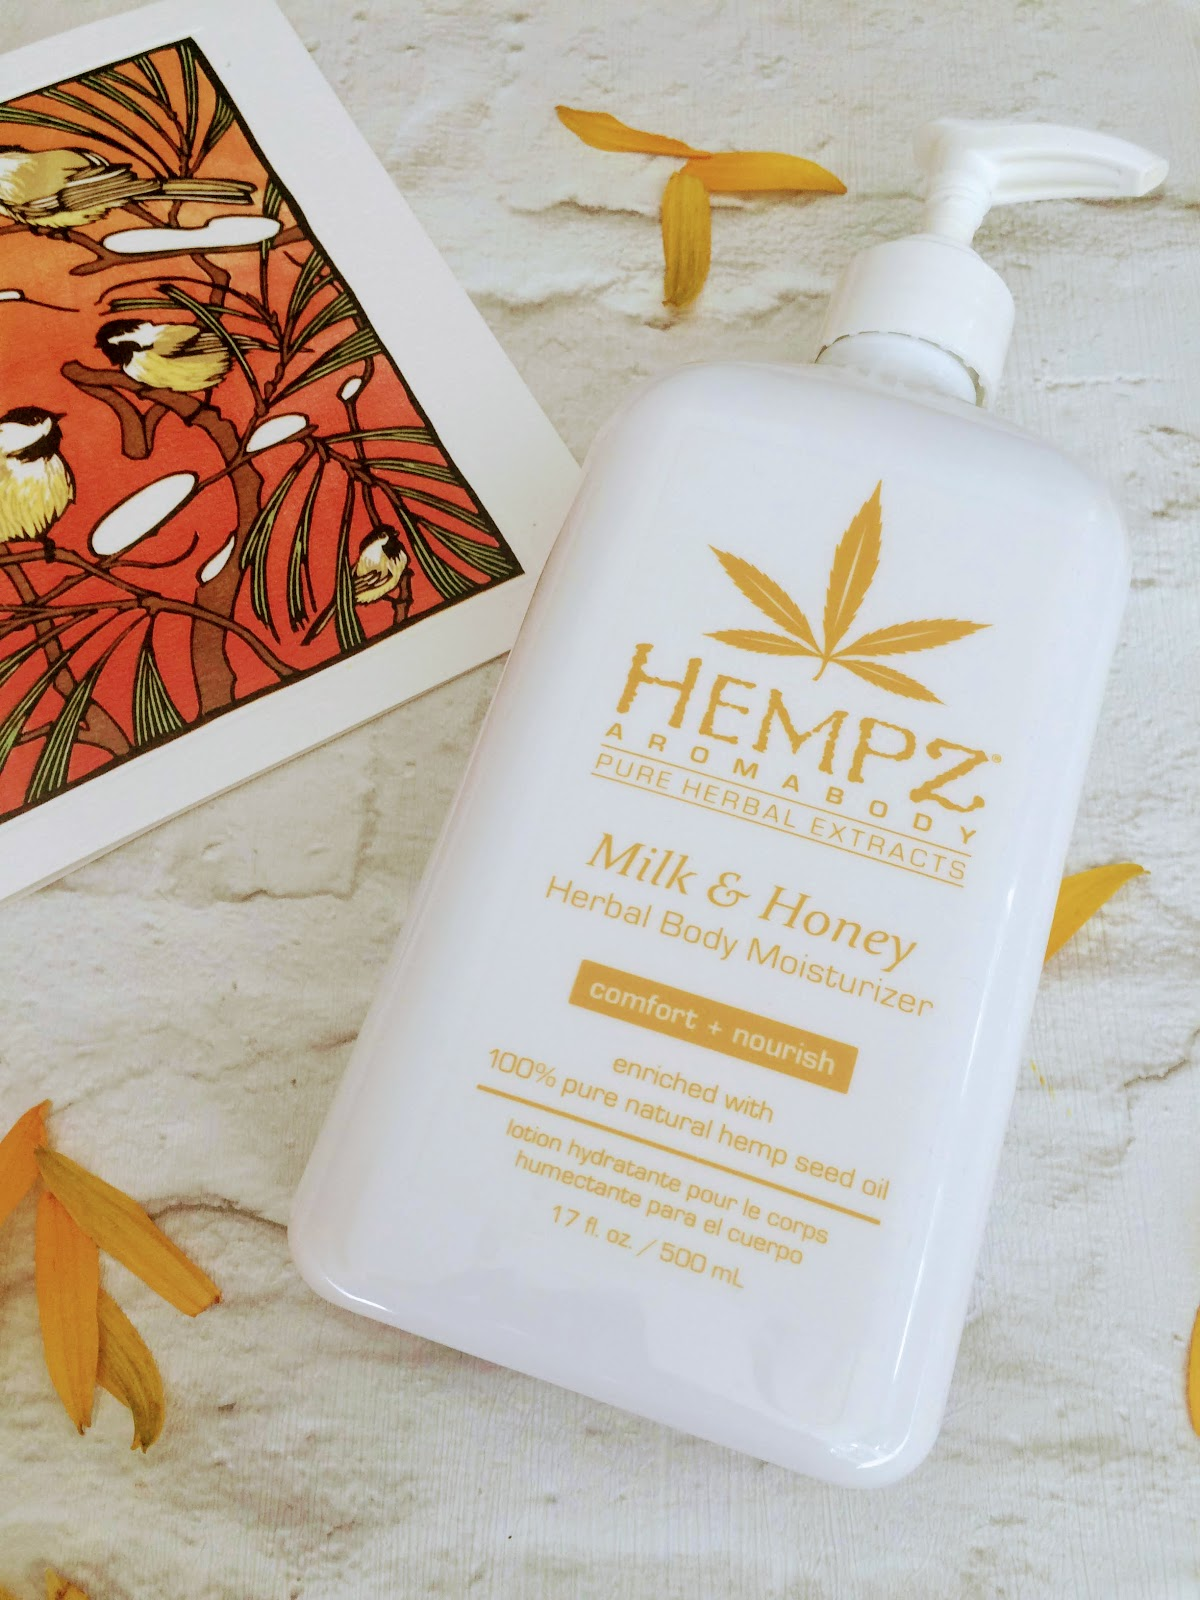 Hempz Milk & Honey body moisturser